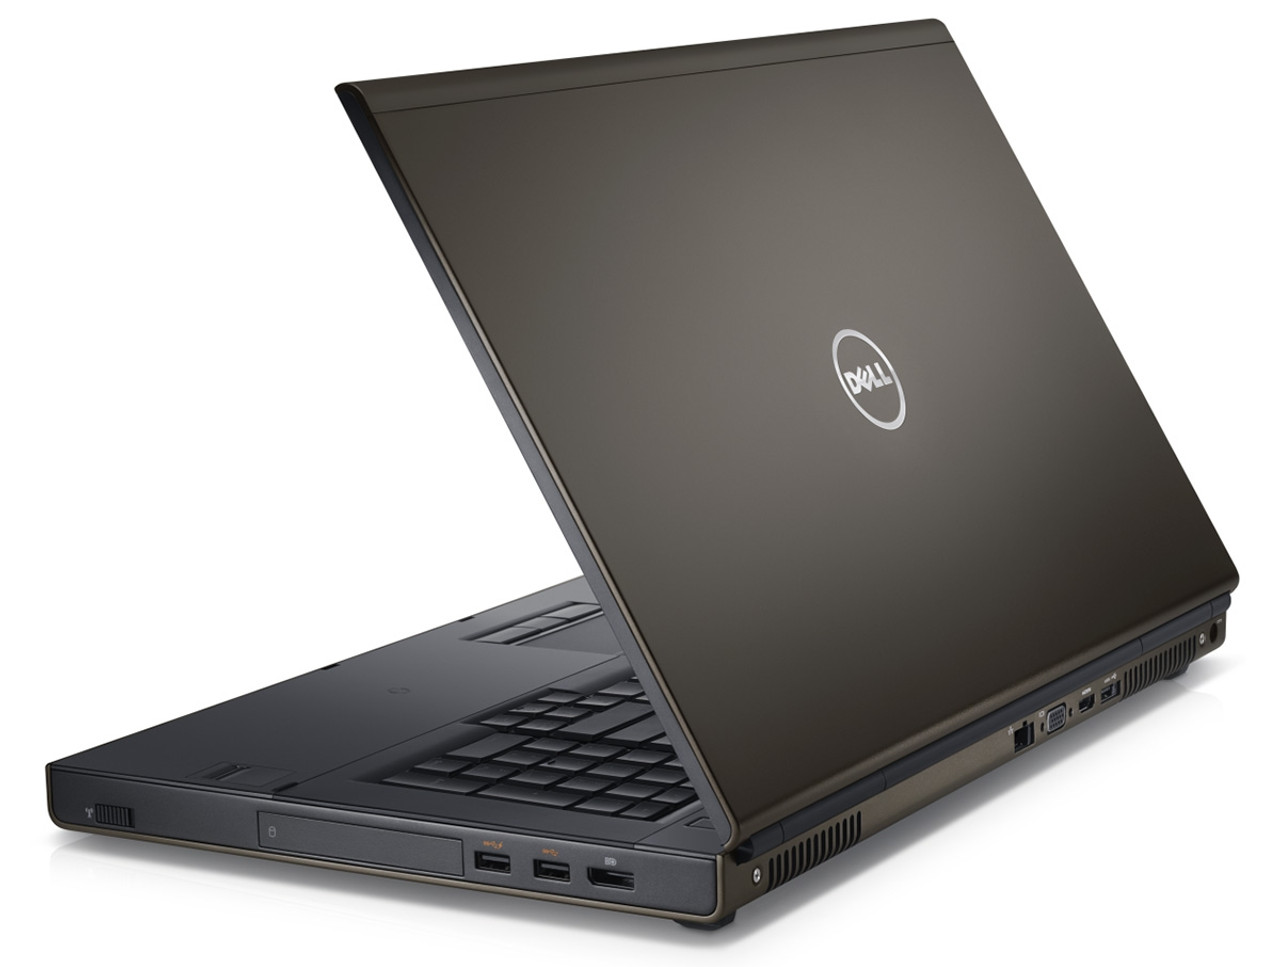 Dell Precision M6600 Laptop Quad Core i7 2.4GHz, 16GB Ram, 250GB SSD, DVD-RW, Windows 10 Pro 64 Notebook